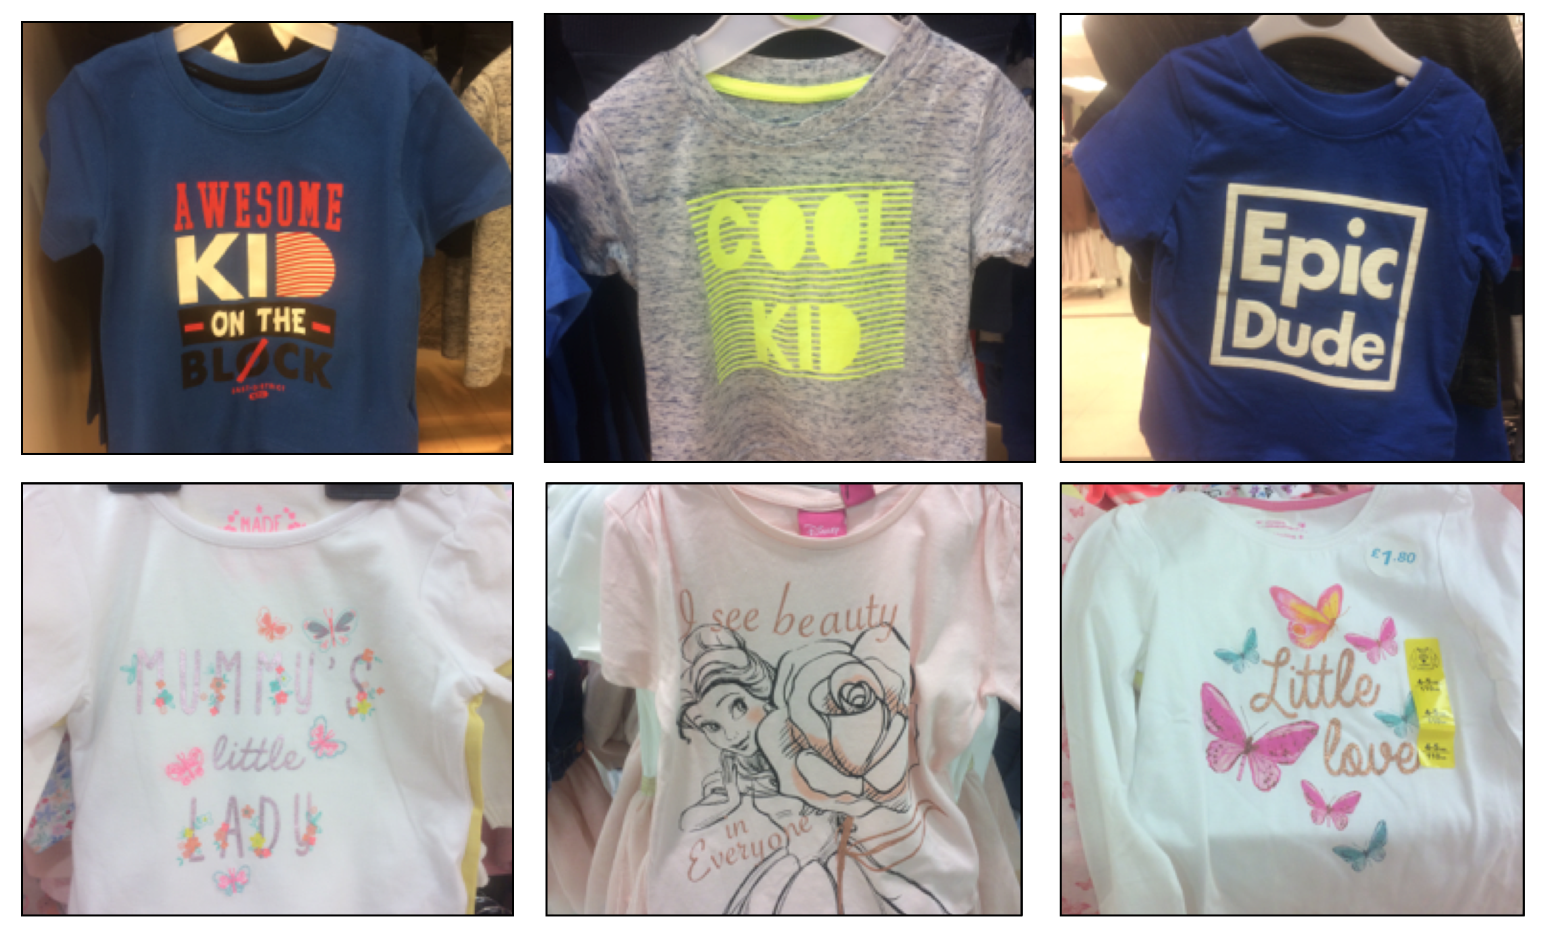 gendered clothing